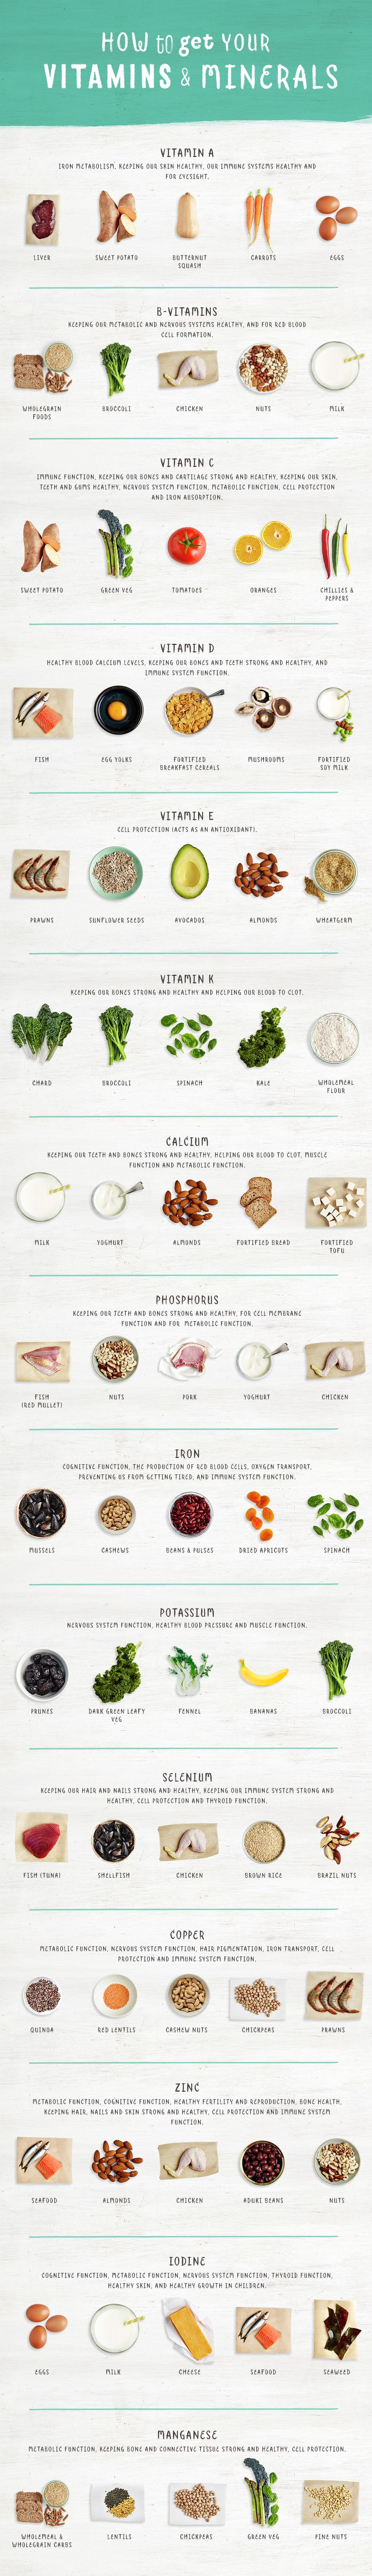 What vitamins and minerals are in different foods? How can you make sure you're getting all your vitamins and minerals? Our chart is a good place to start.